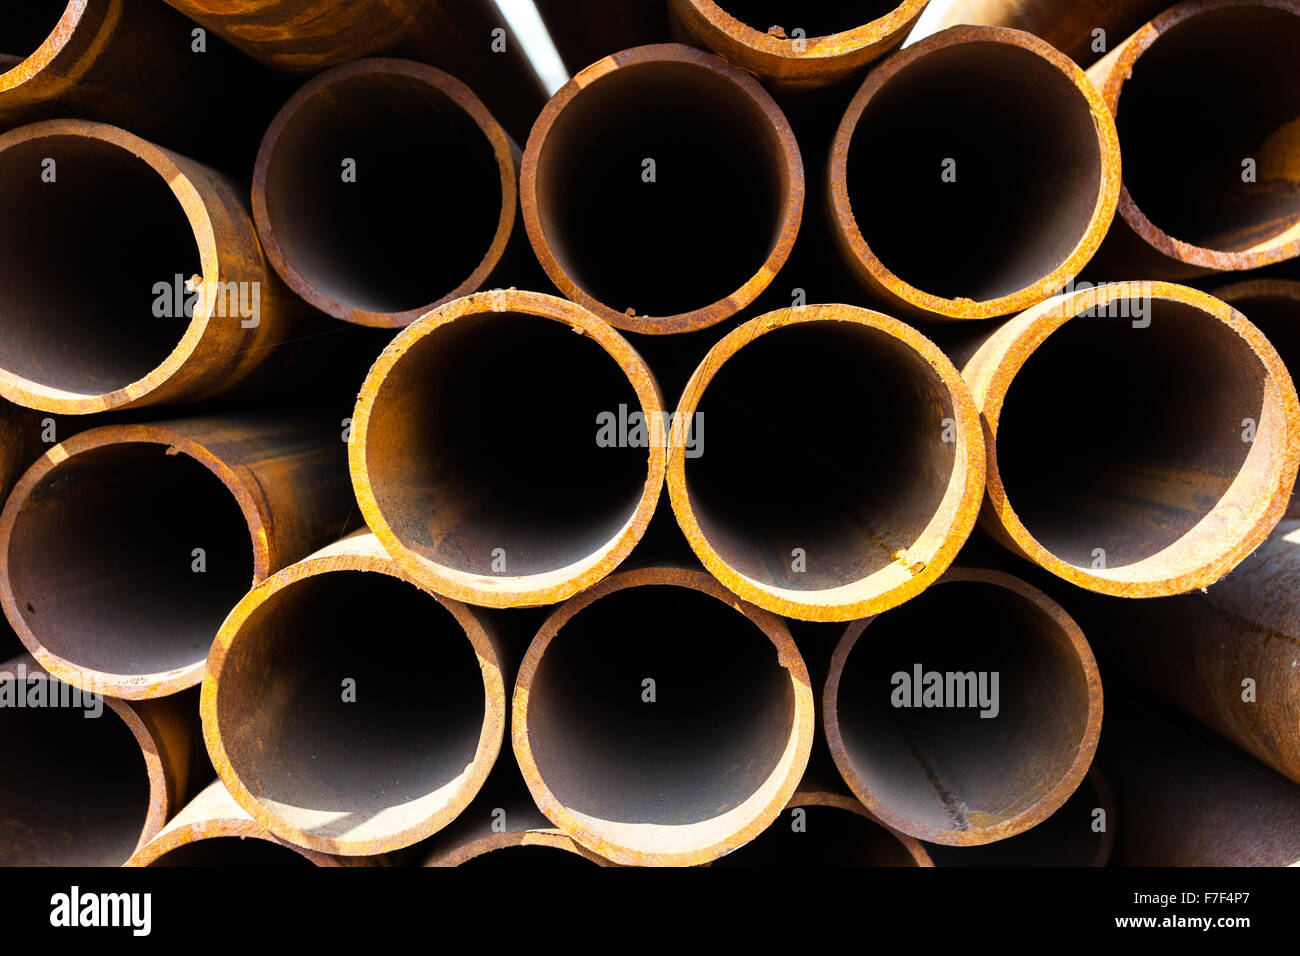 Stack of pipes - Stock Image